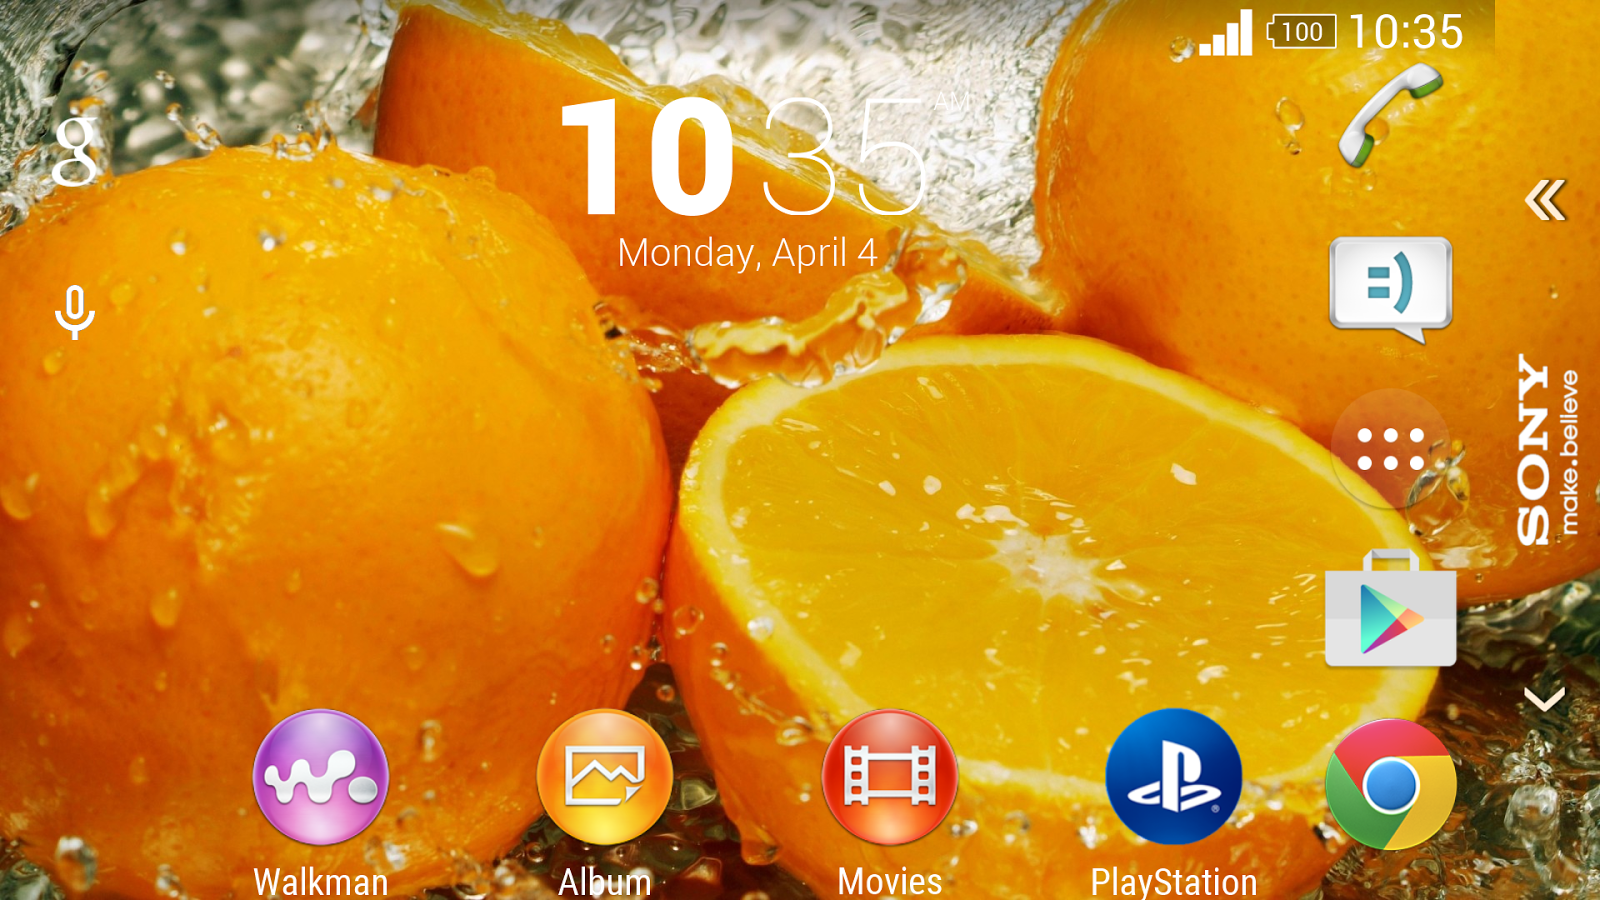 Xperia Z5 Premium Orange Theme 1 0 0 APK Download - Android